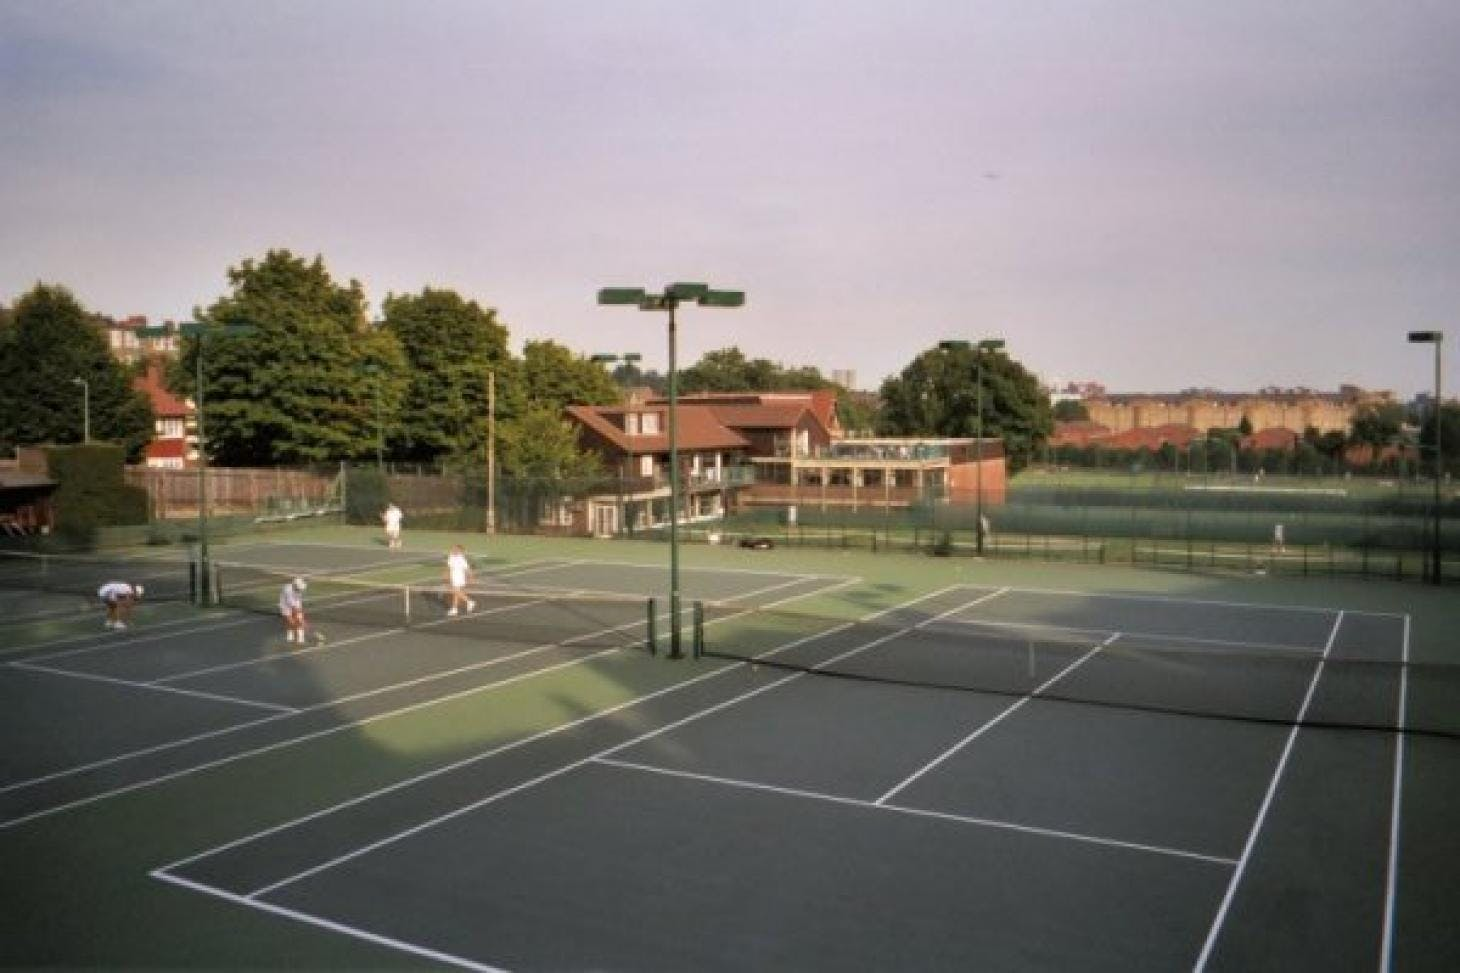 Cumberland Lawn Tennis Club Outdoor | Grass tennis court